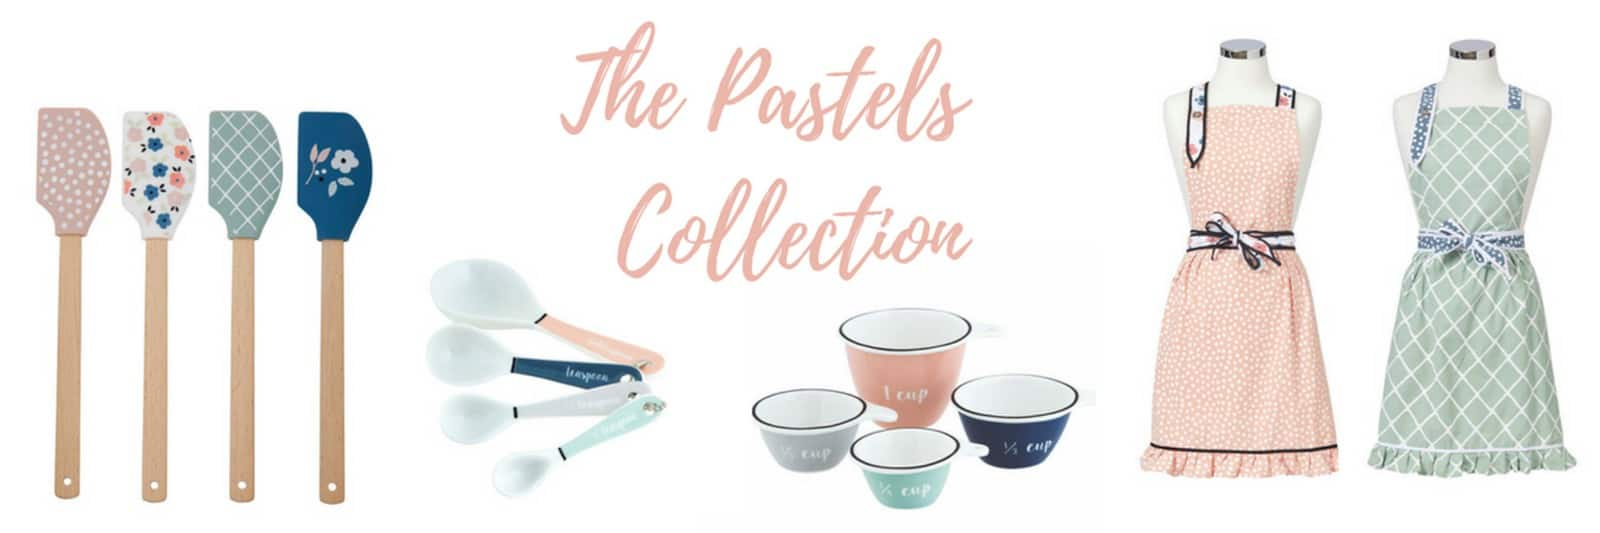 The Pastels Baking Collection